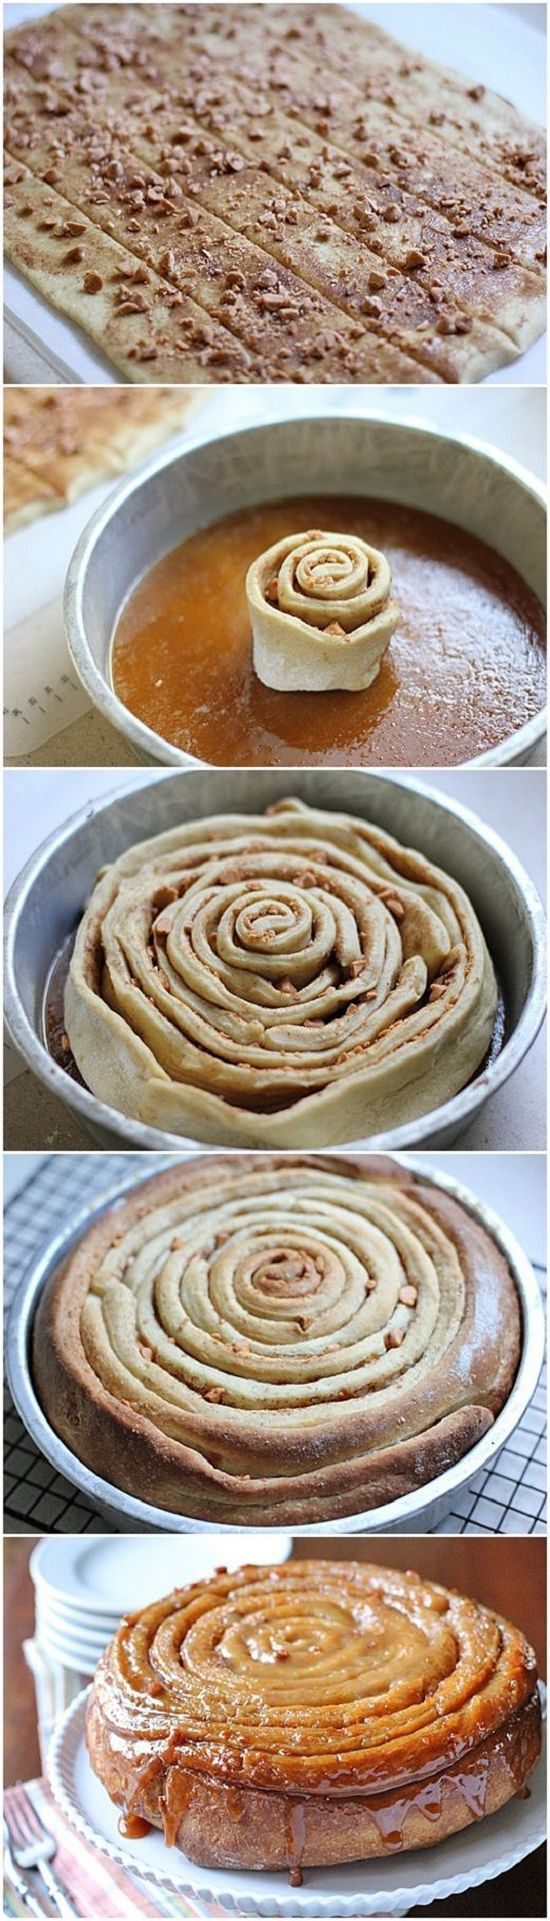 4get the Butterscotch Spiral Coffee Cake pictured above im making a big ass honeybunn cake instead